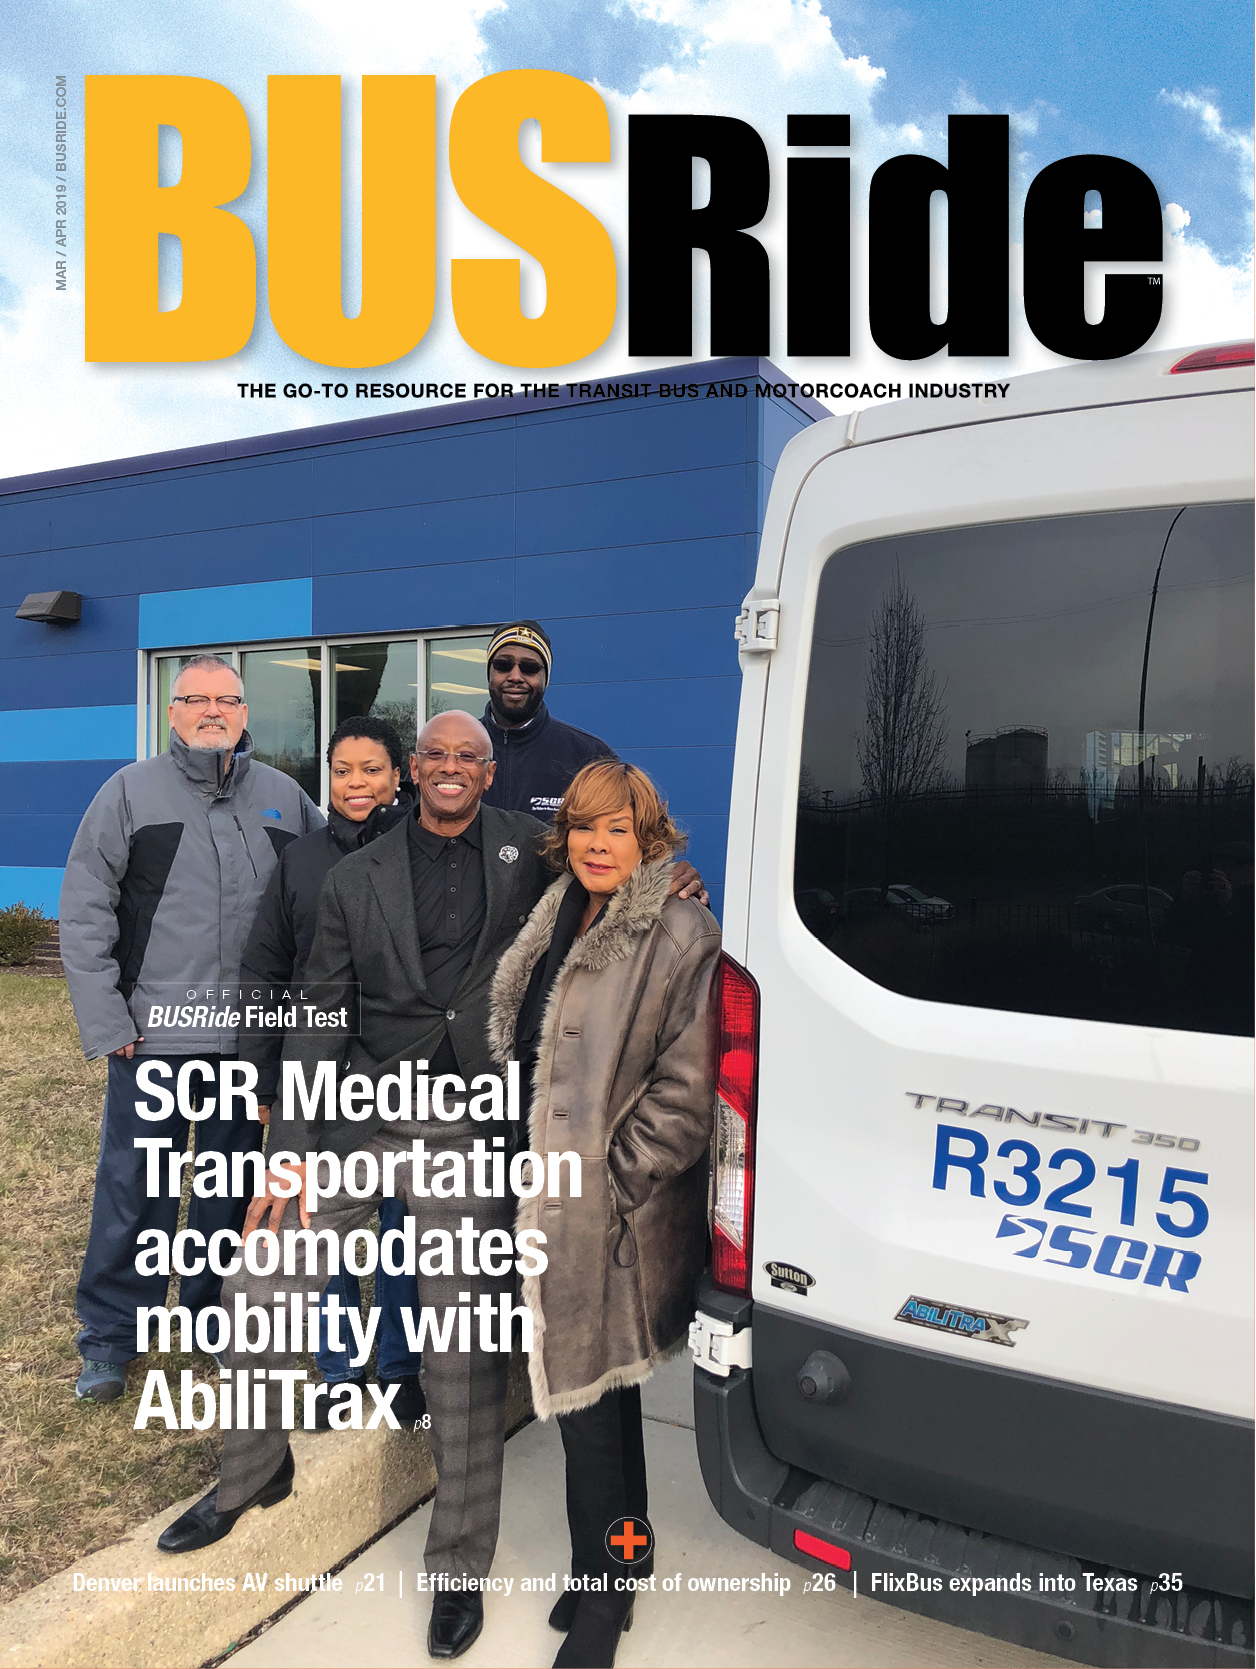 SCR Medical Transportation accommodates mobility with AbiliTrax